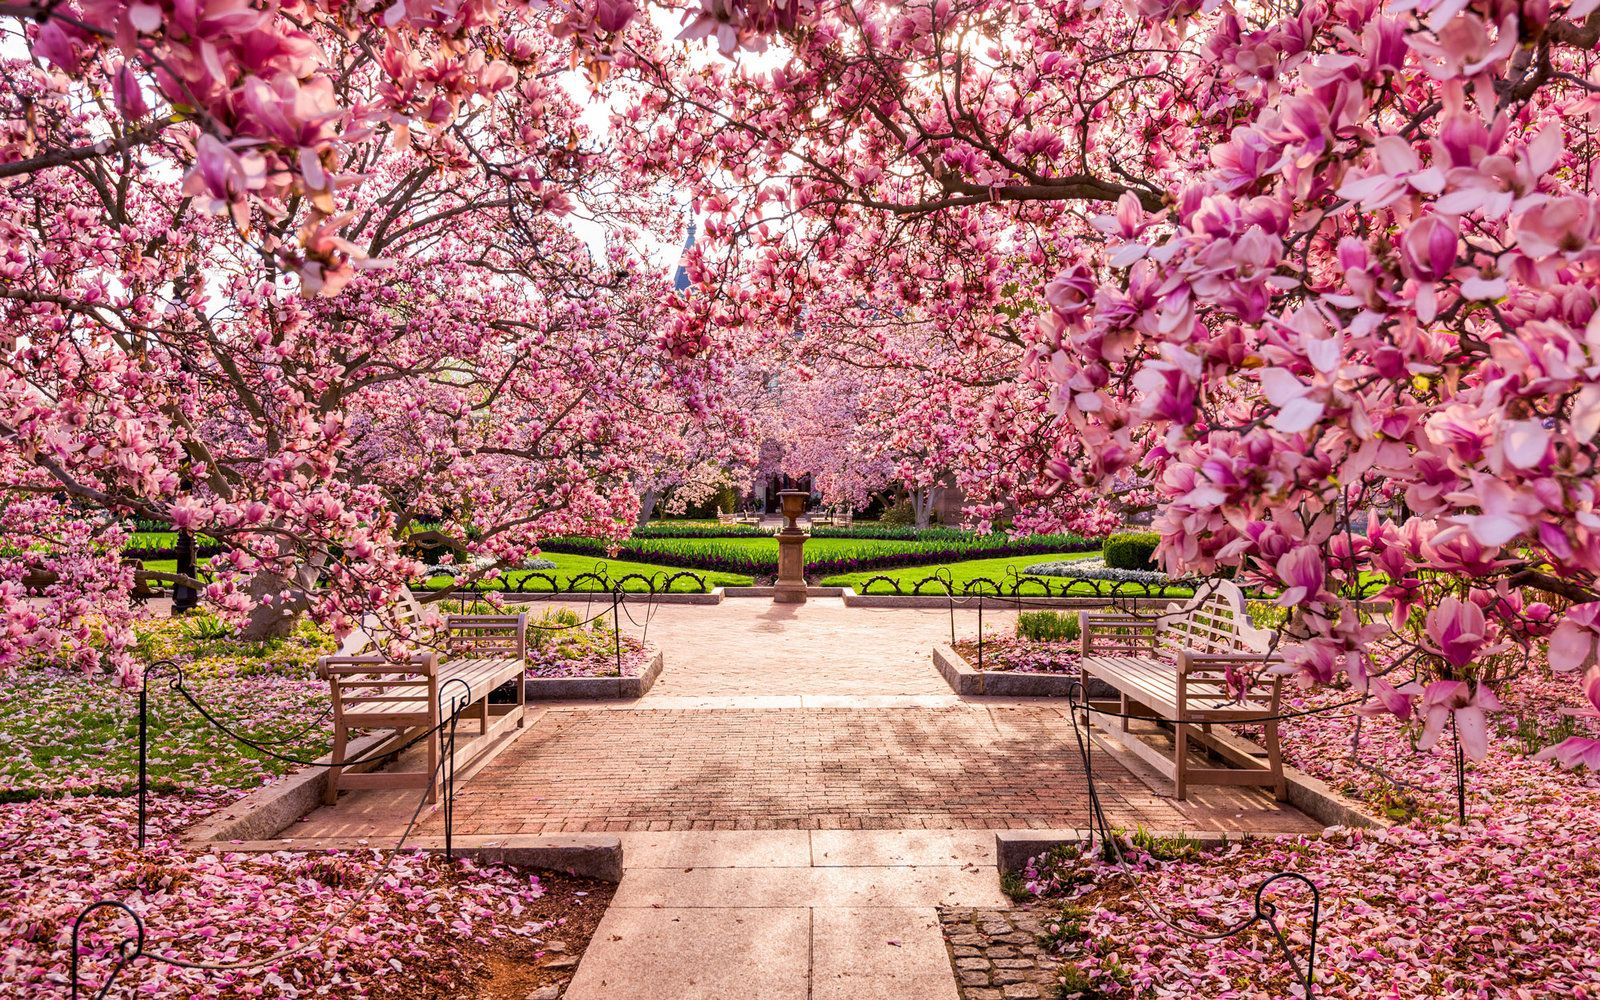 When Do Cherry Blossoms Bloom In Washington D C Cherry Blossom Pictures National Mall Washington Blooming Trees